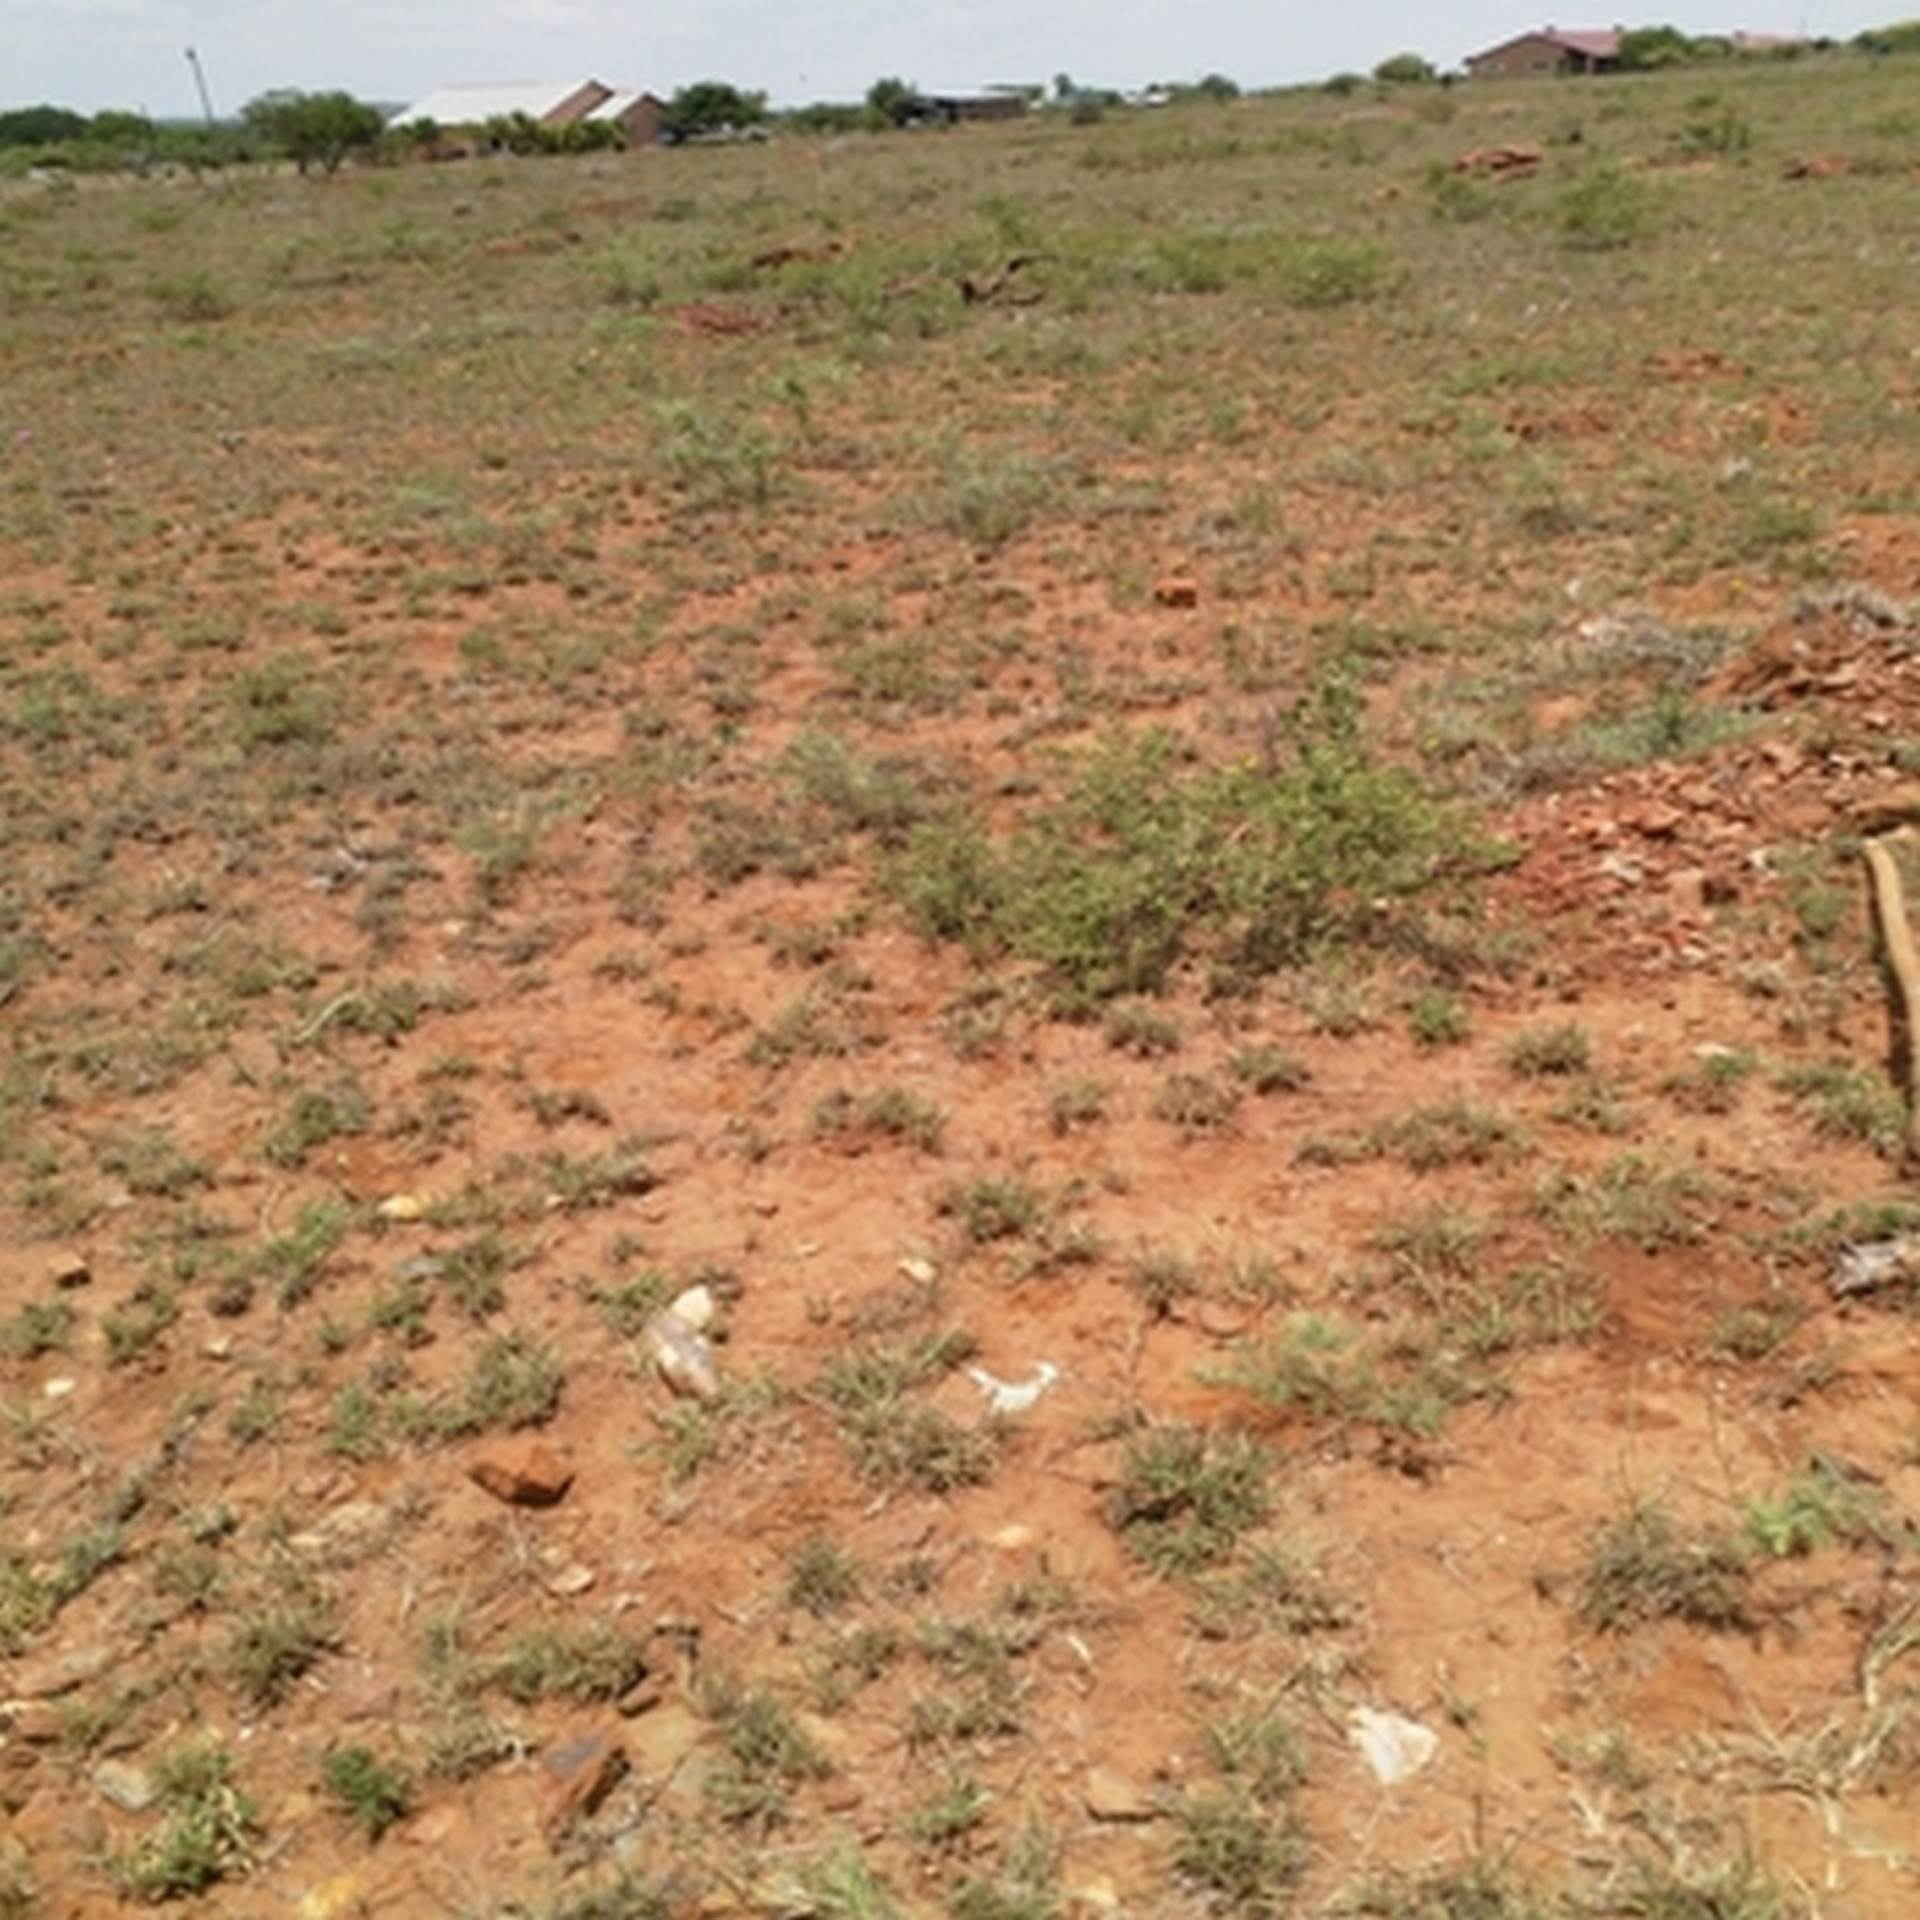 Vacant Land Residential For Sale In Myngenoegen A H